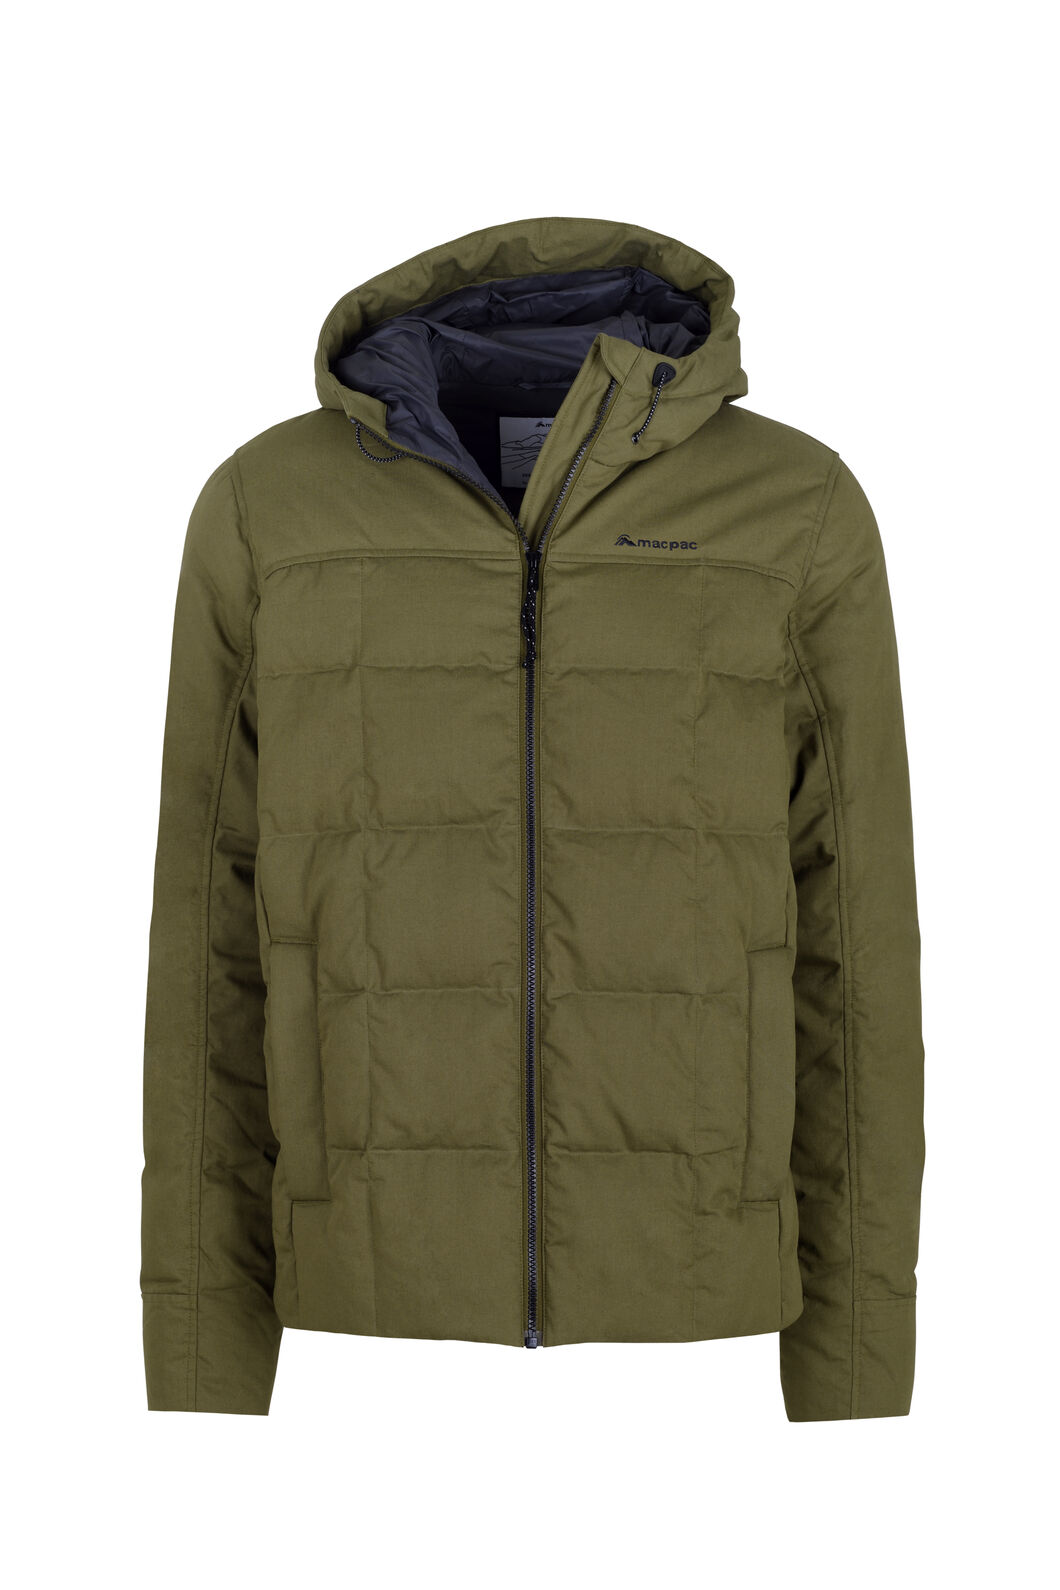 Macpac Fusion Jacket -Men's, Military Olive, hi-res